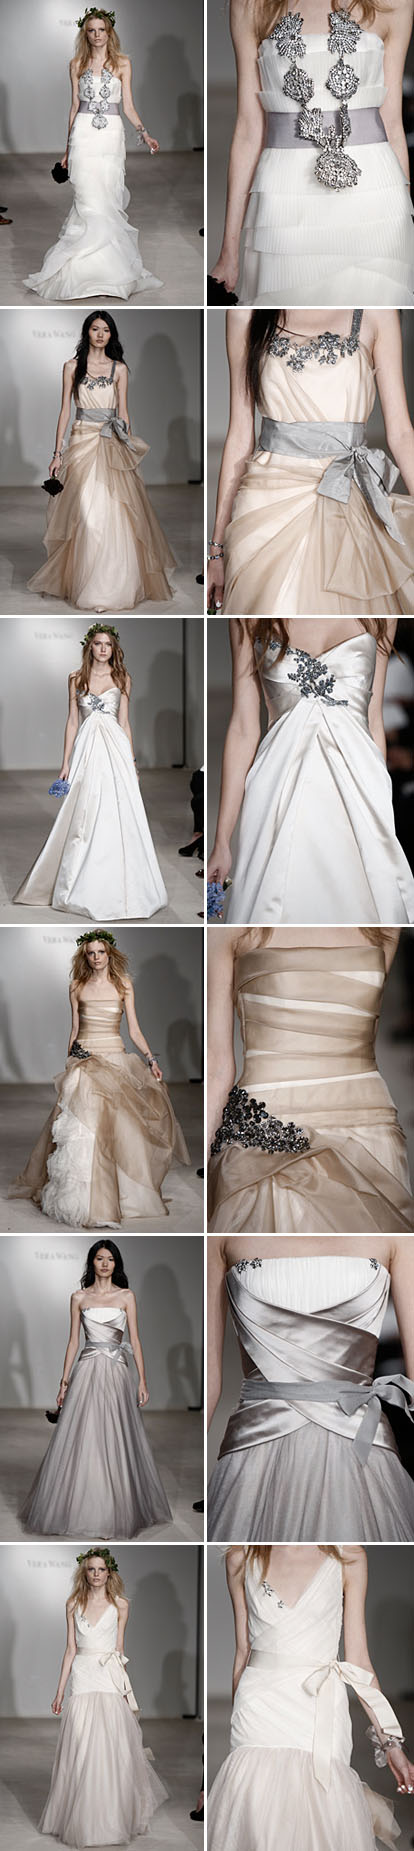 fall 09 wedding gowns from vera wang